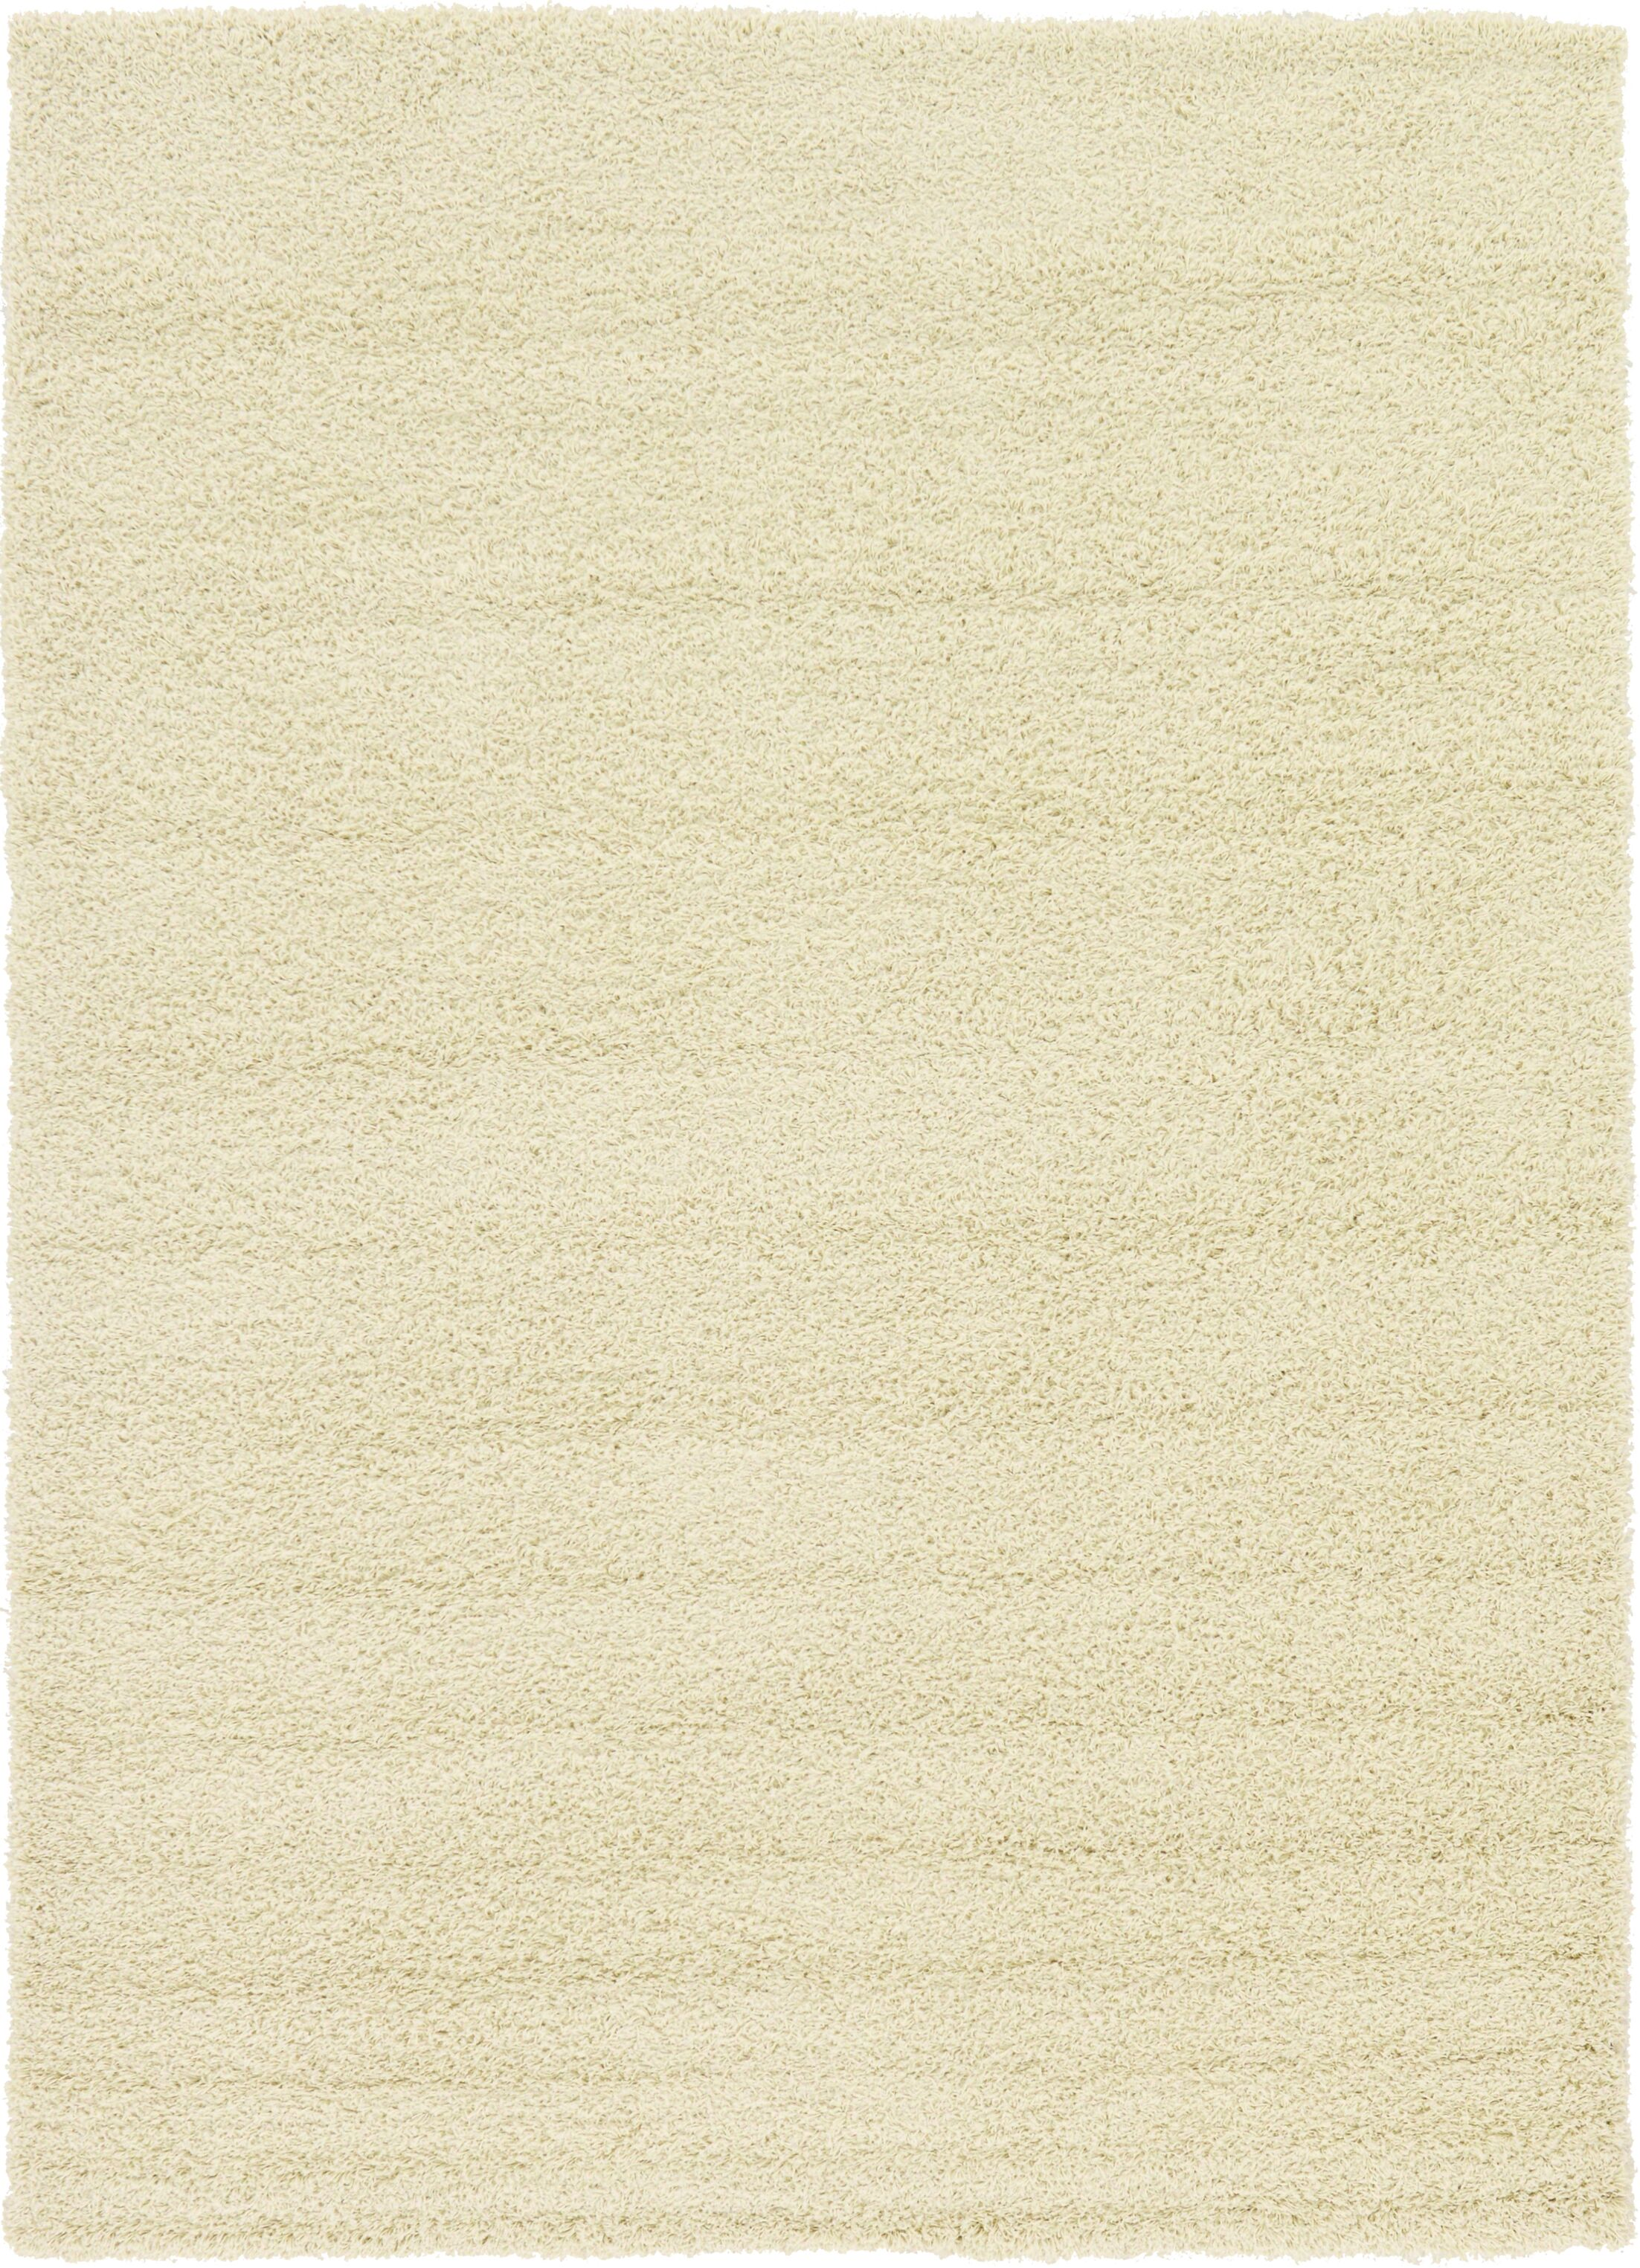 Lilah Pure Ivory Area Rug Rug Size: Rectangle 7' x 10'